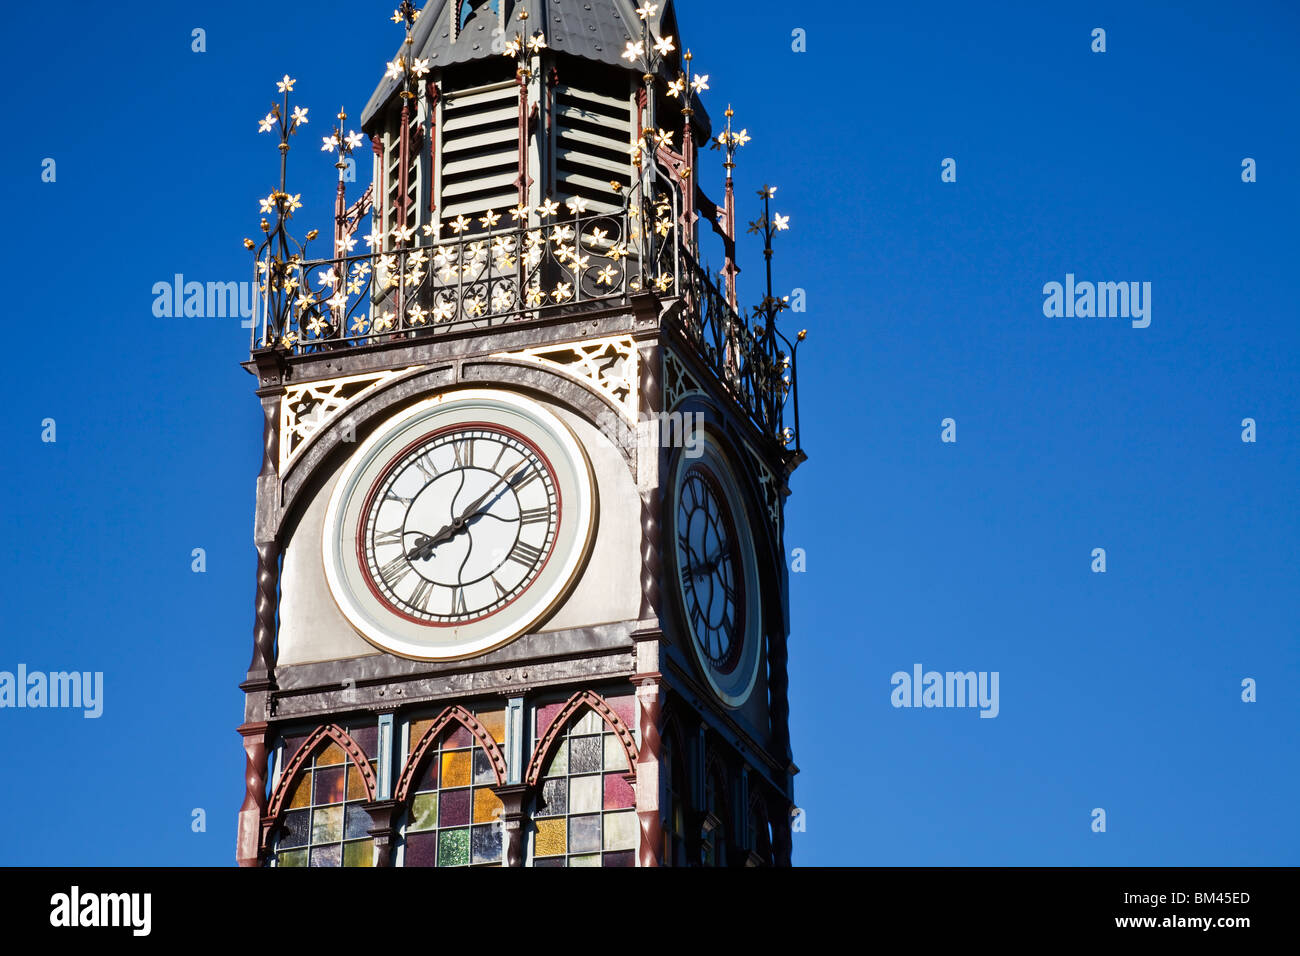 Queen Victoria Jubilee Clock Tower. Christchurch, Canterbury, South Island, New Zealand - Stock Image